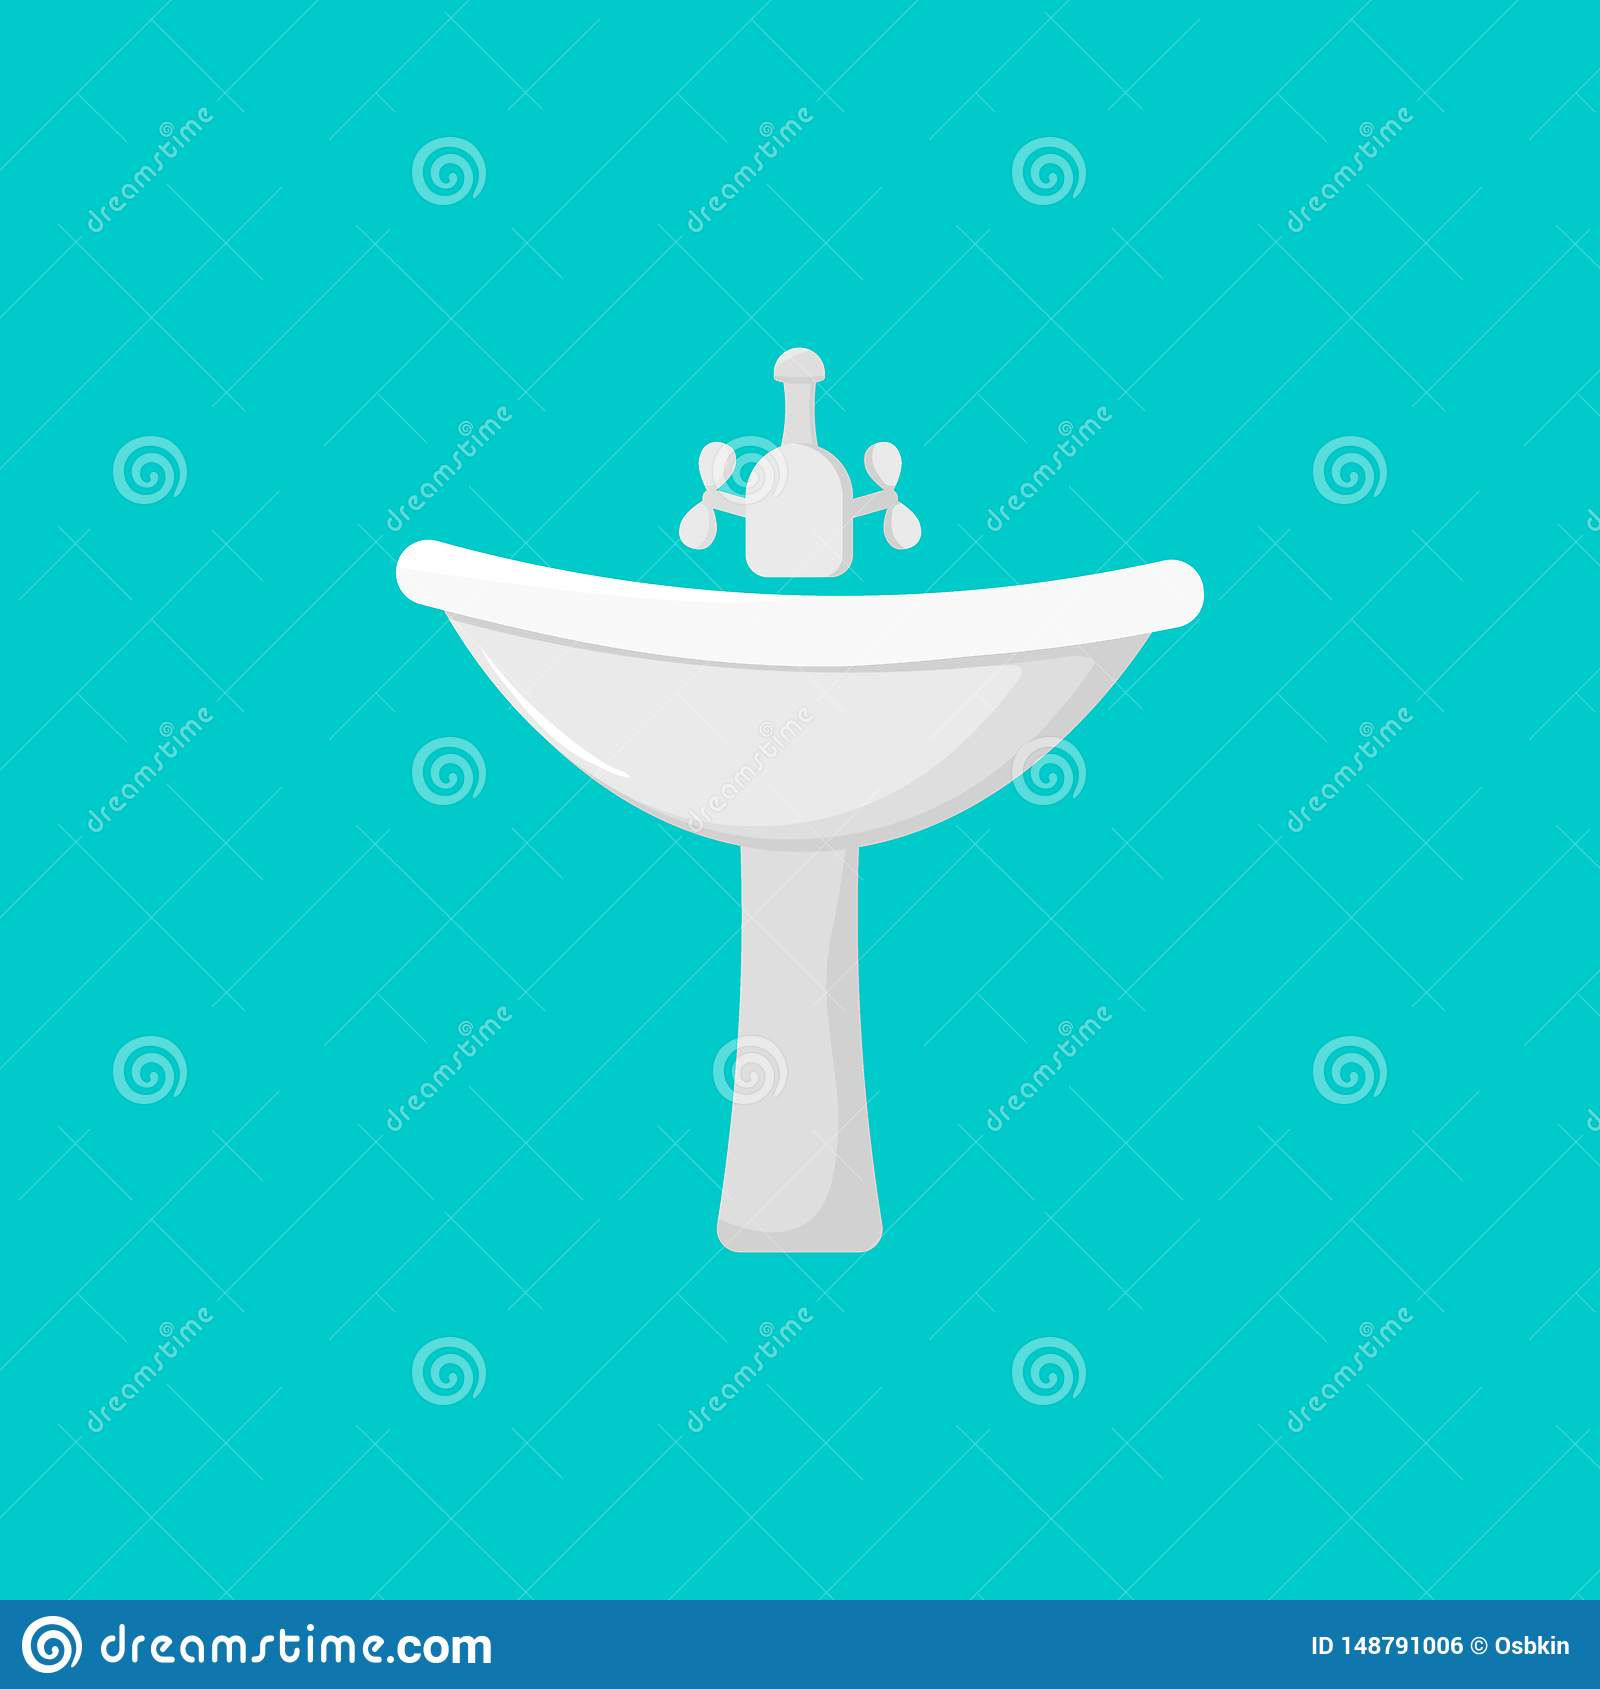 Cartoon tap icon and sink icon